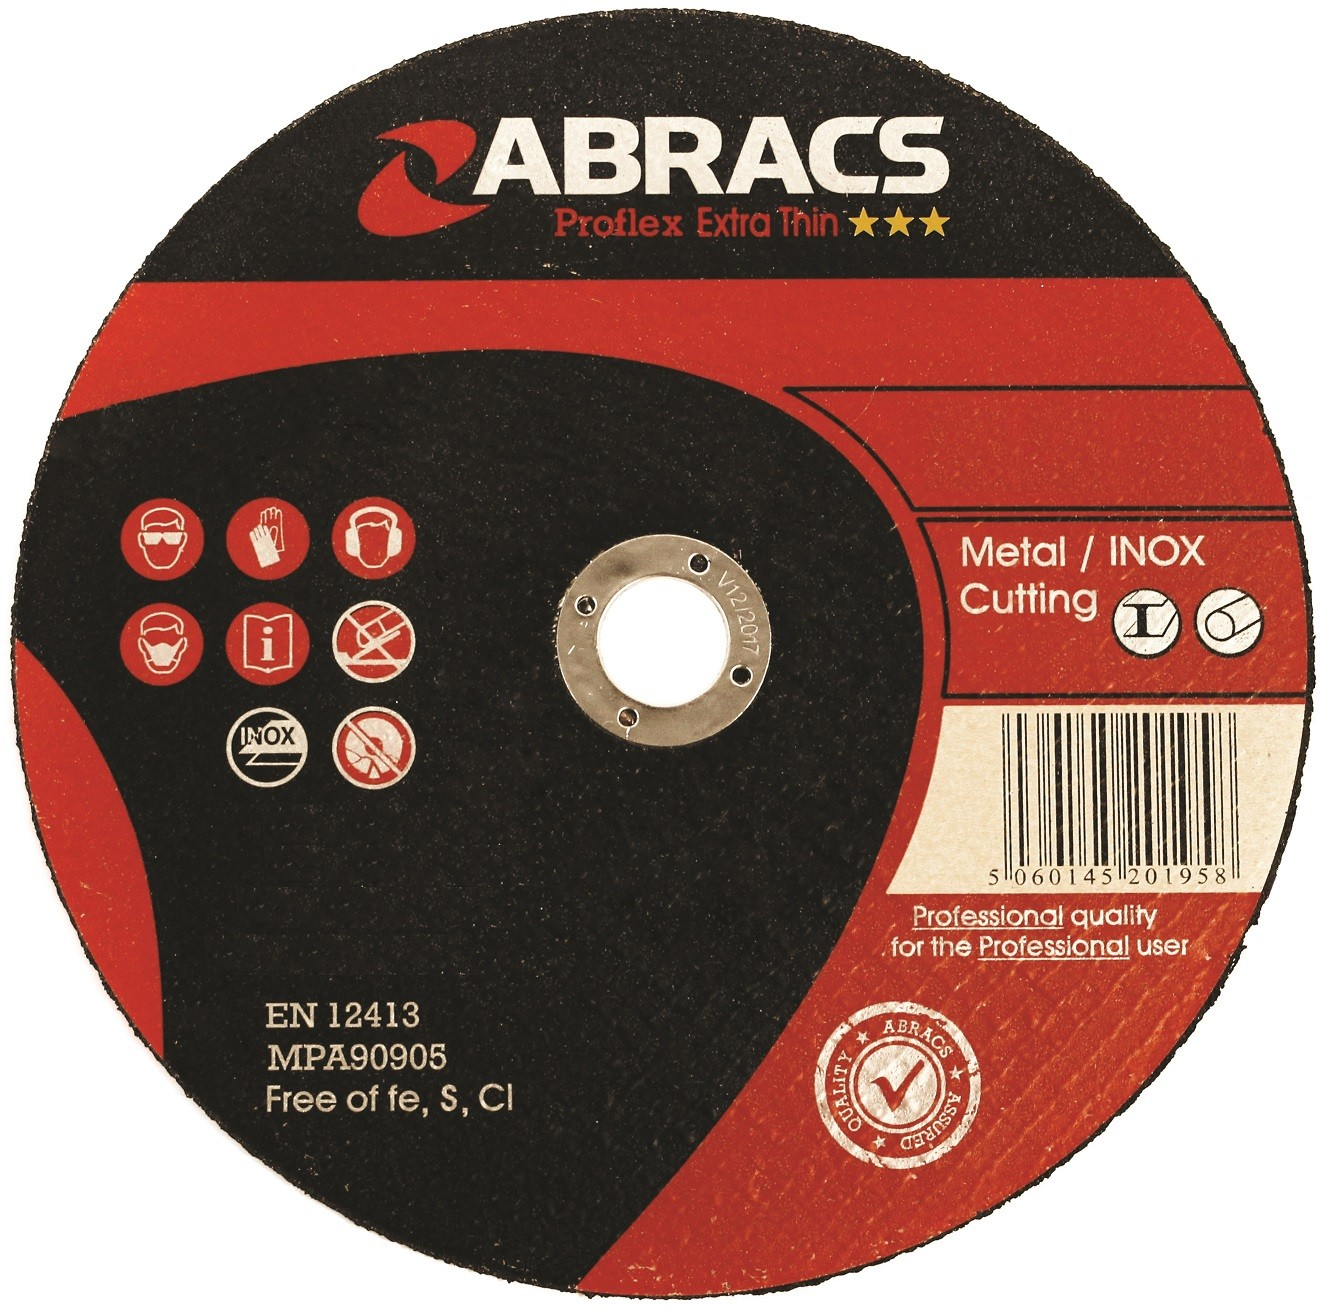 "Extra Thin INOX Cutting Disc 4 1/2"" Abracs 115 x 1.0 x 22mm"